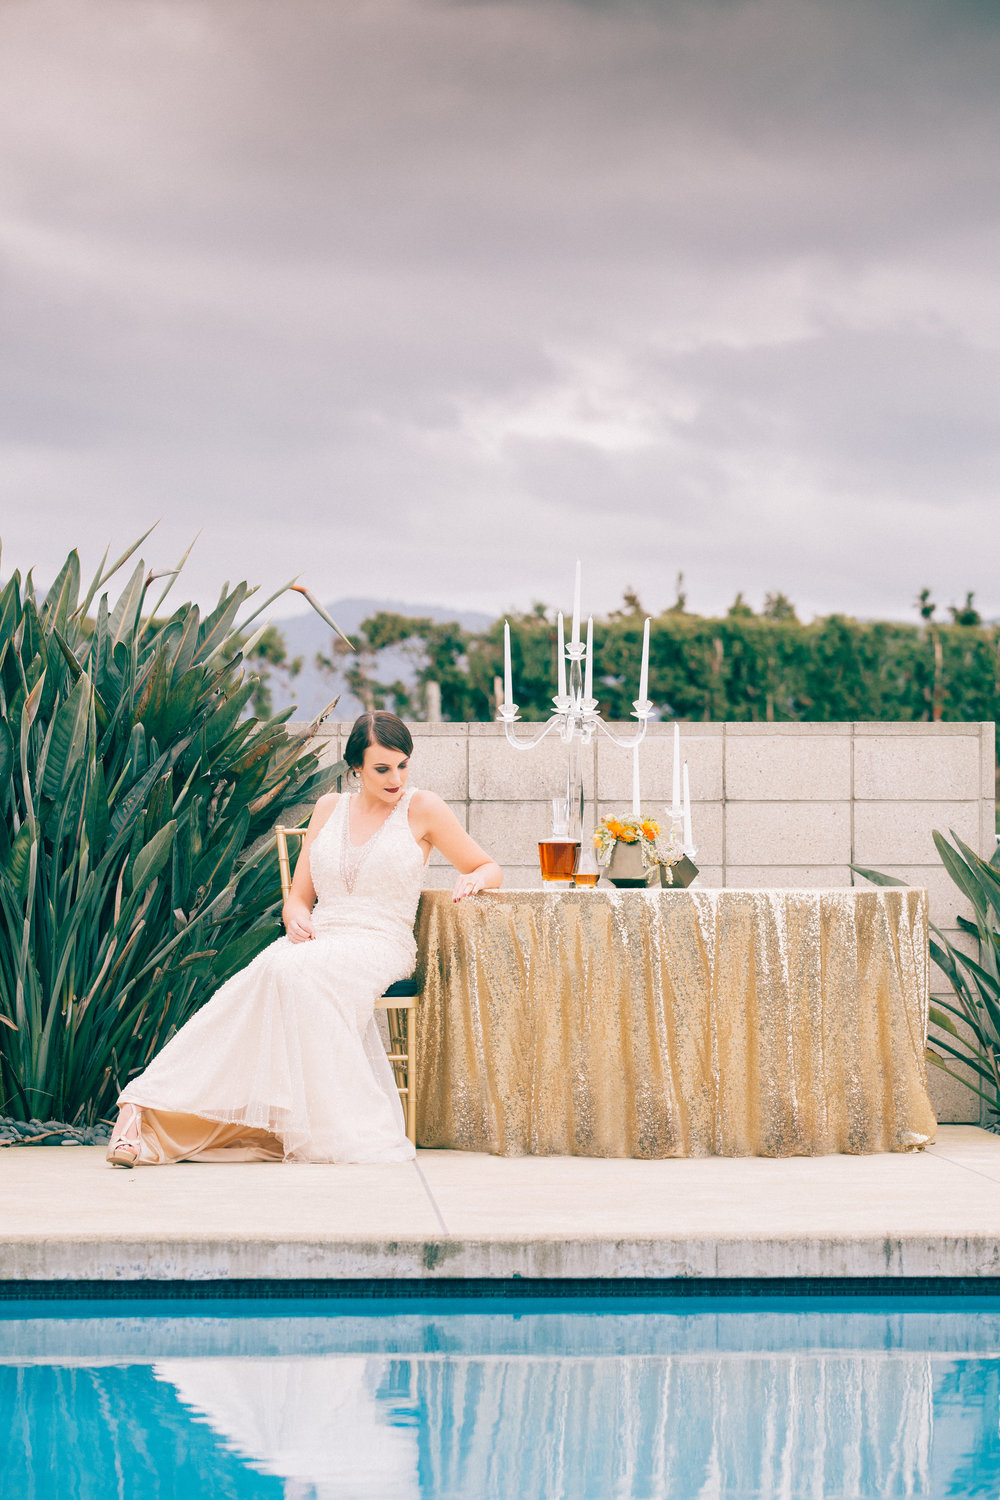 Glam wedding | Modern bride inspiration | photography by Tinted | Dress from Astra Bridal | www.borrowedandblue.kiwi